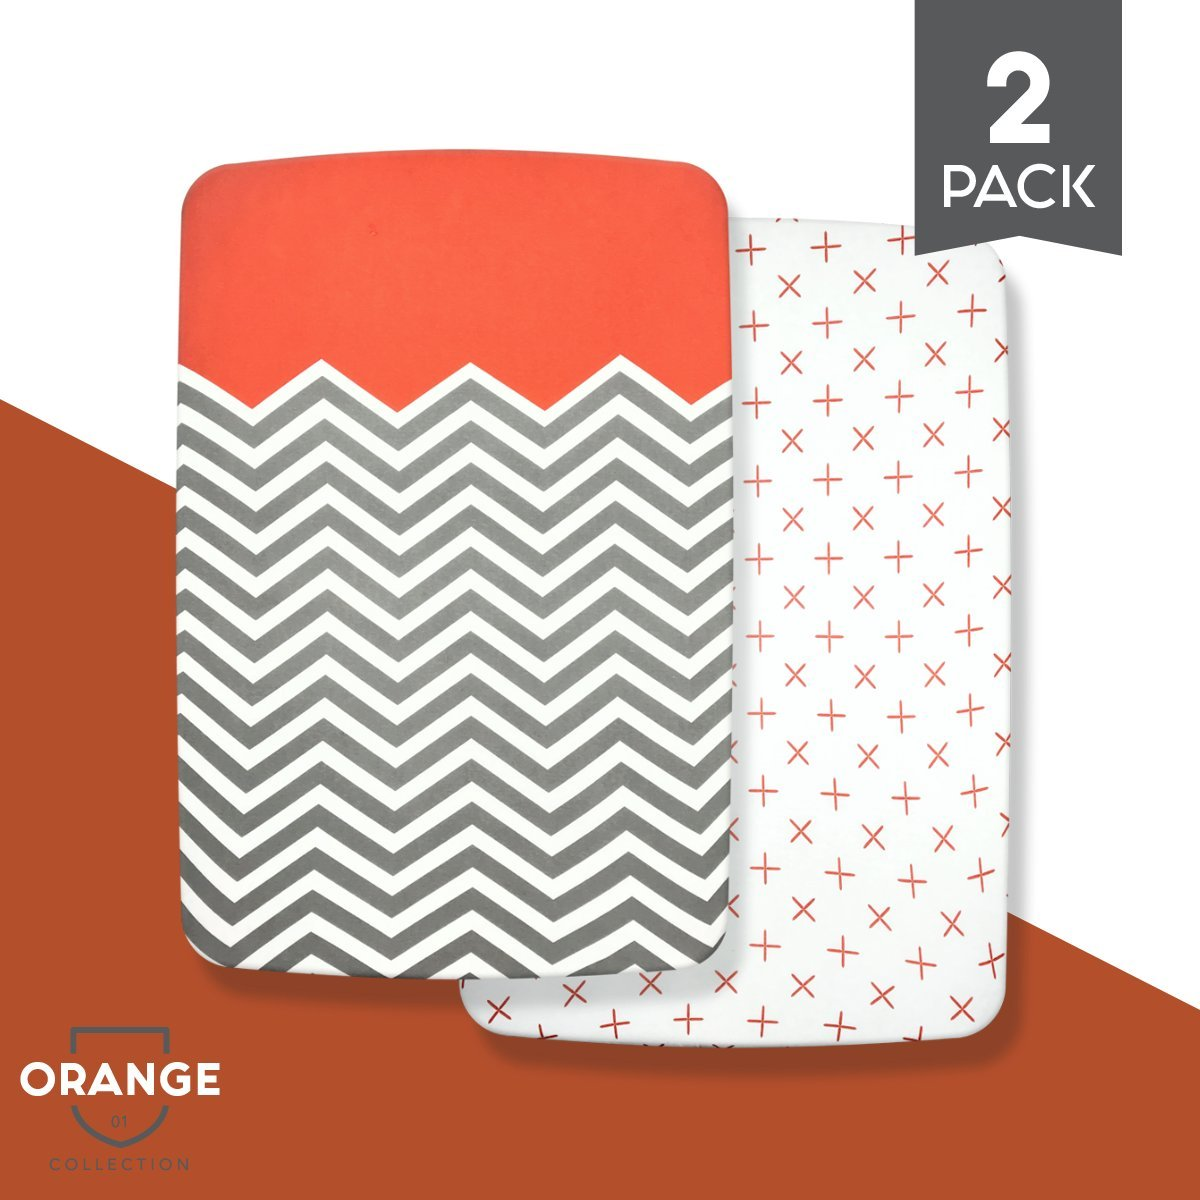 """Organic Cotton Crib Sheet Set: Standard Pack n Play Mattress Sheets (2 Pack) Baby Sheets for Playard, Soft Comfortable Unisex for Infants and Toddlers 39""""x27""""x5""""! (Orange)"""